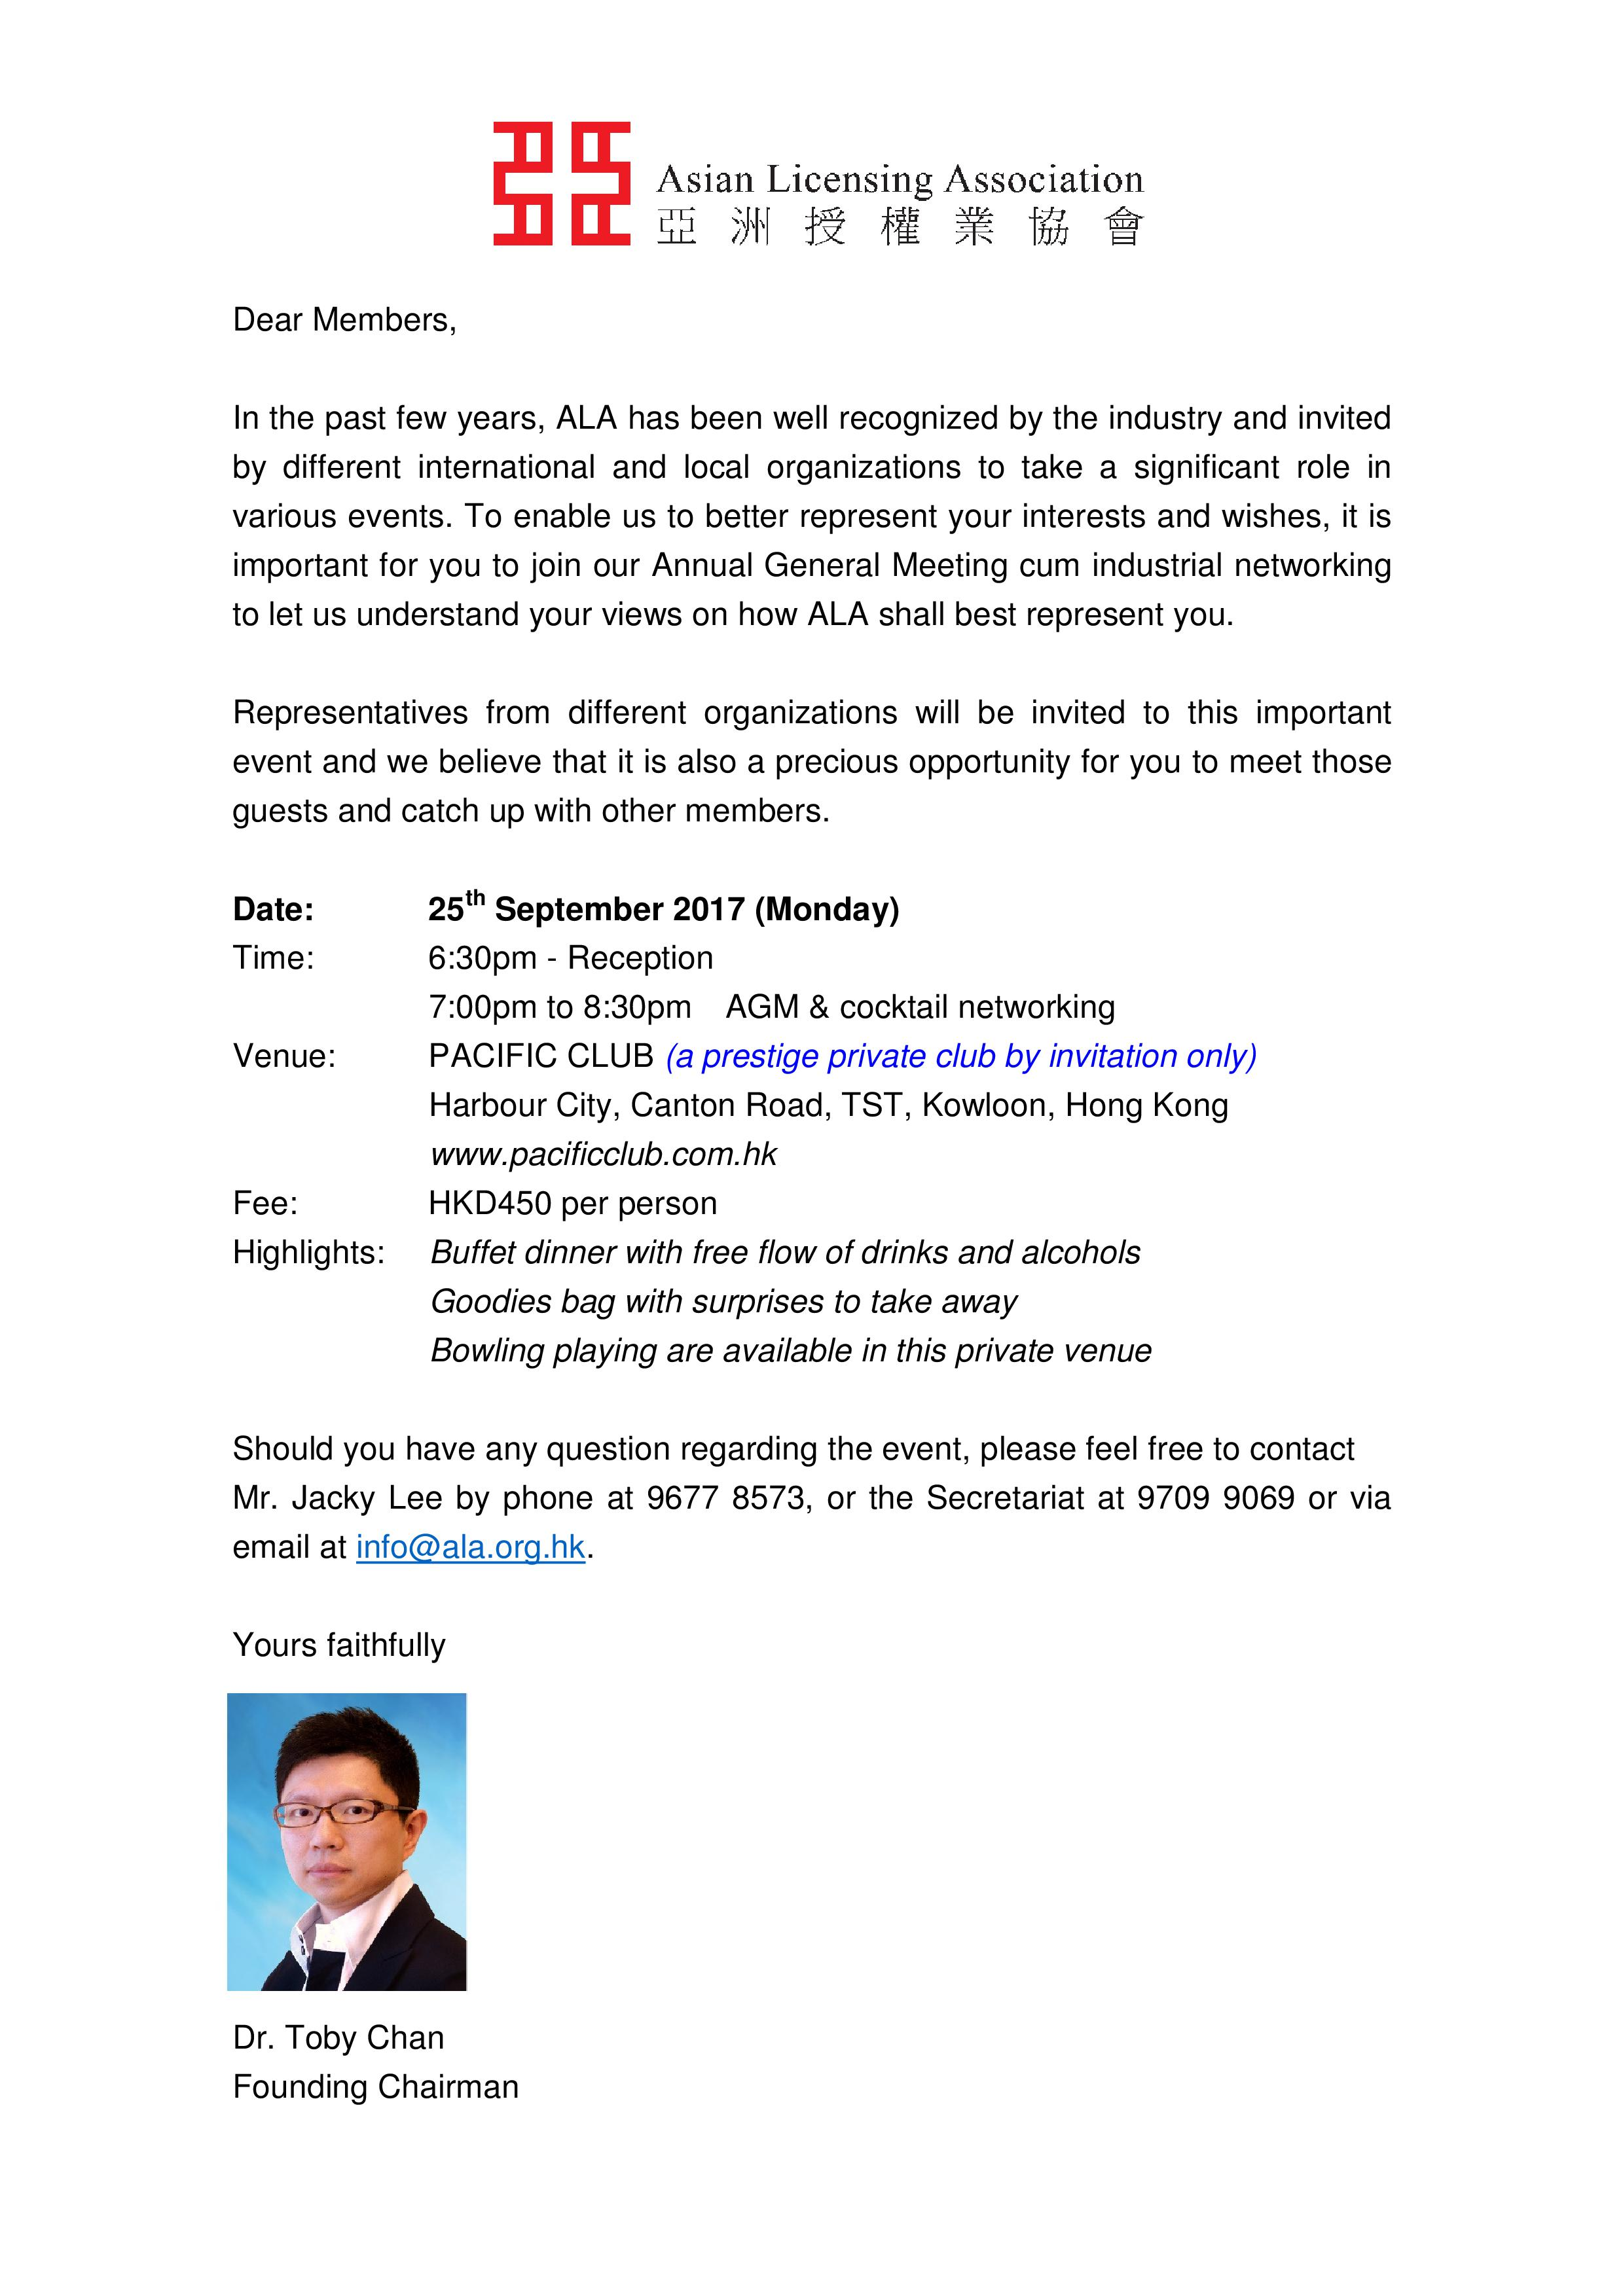 ALA AGM 2017 Invitation-Page1